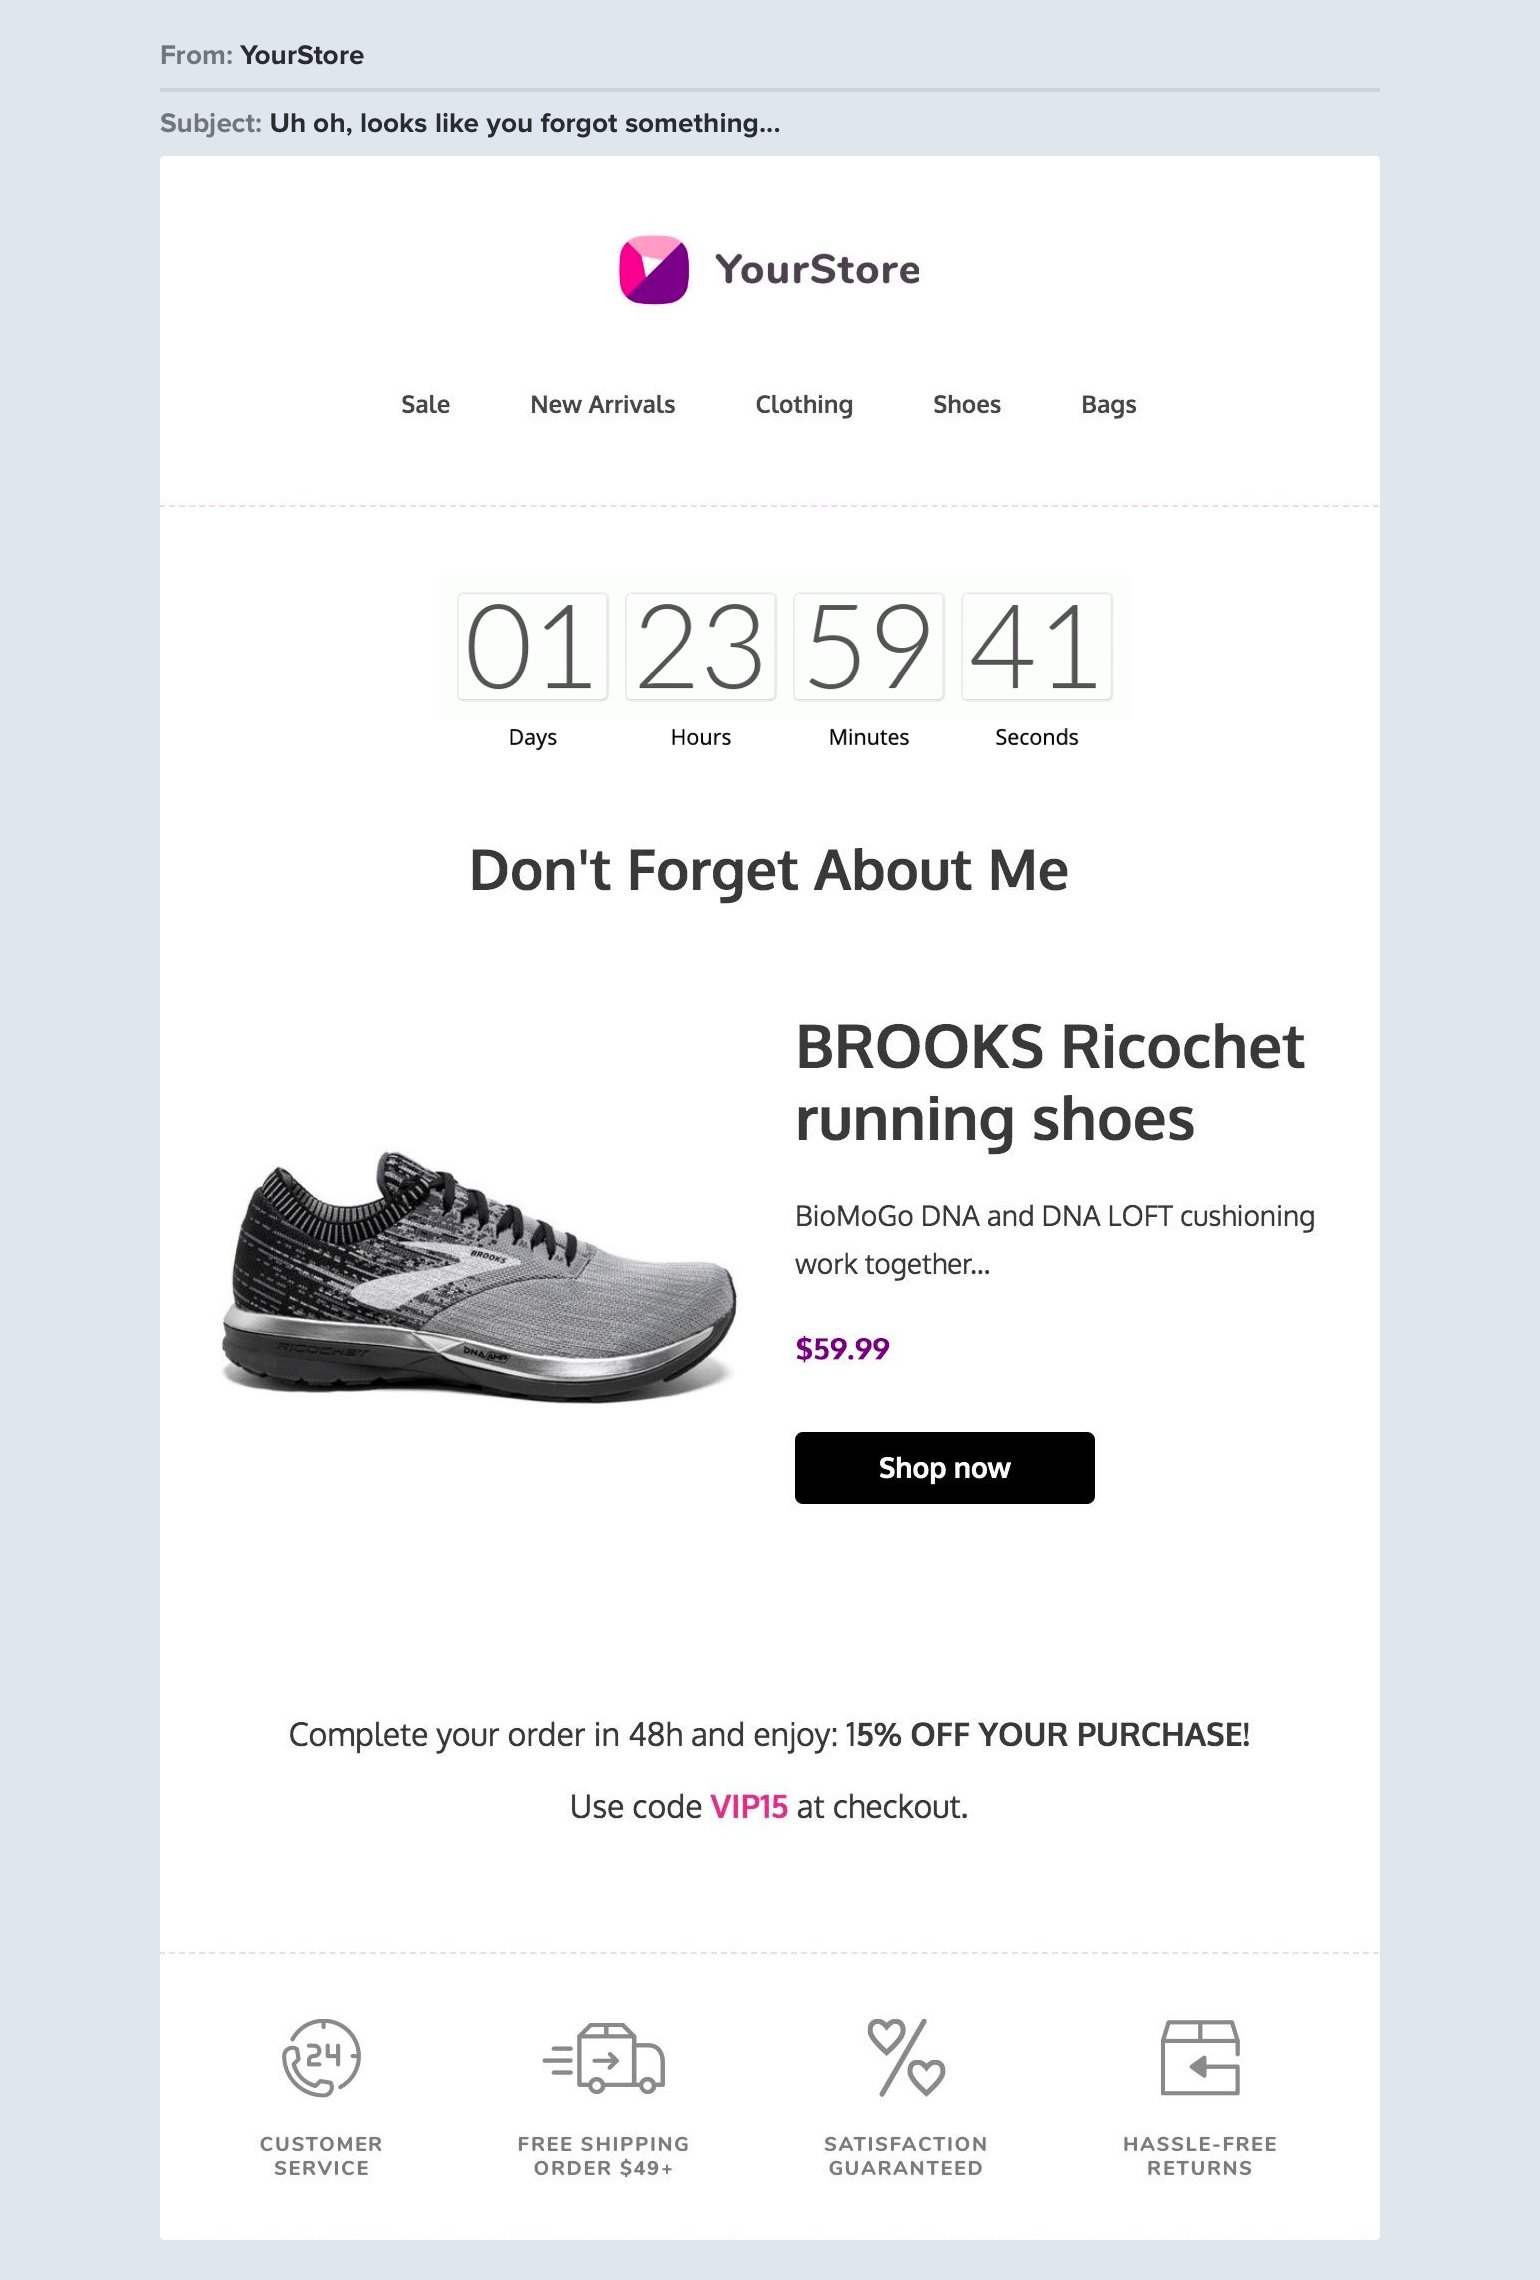 Abandoned shopping cart email example with countdown timer